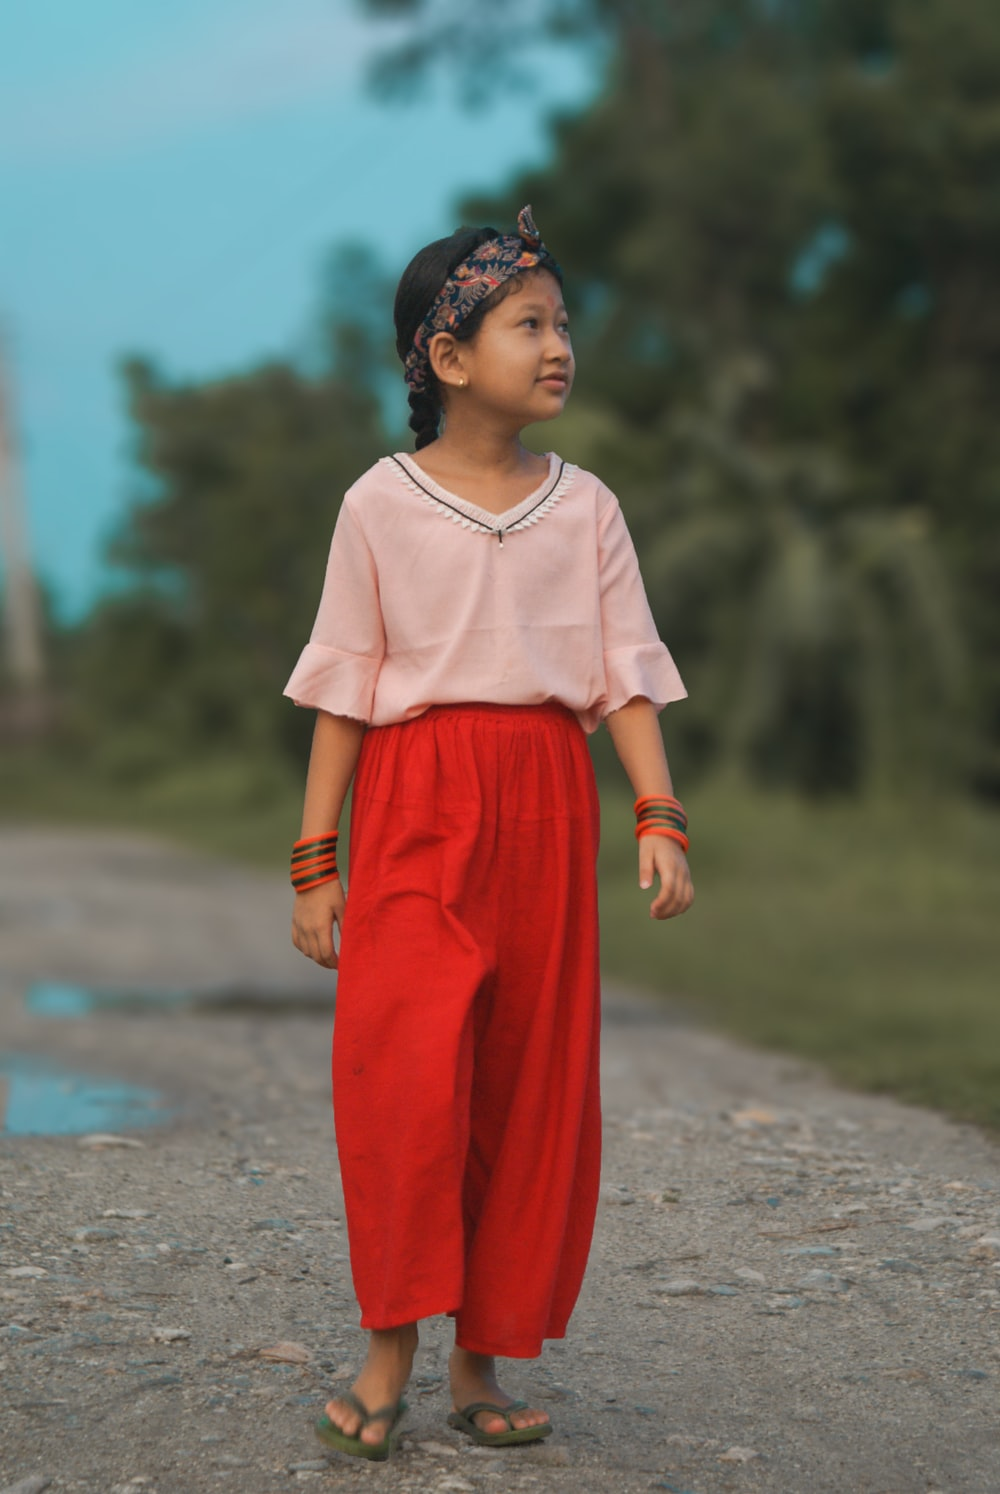 woman in pink dress standing on road during daytime